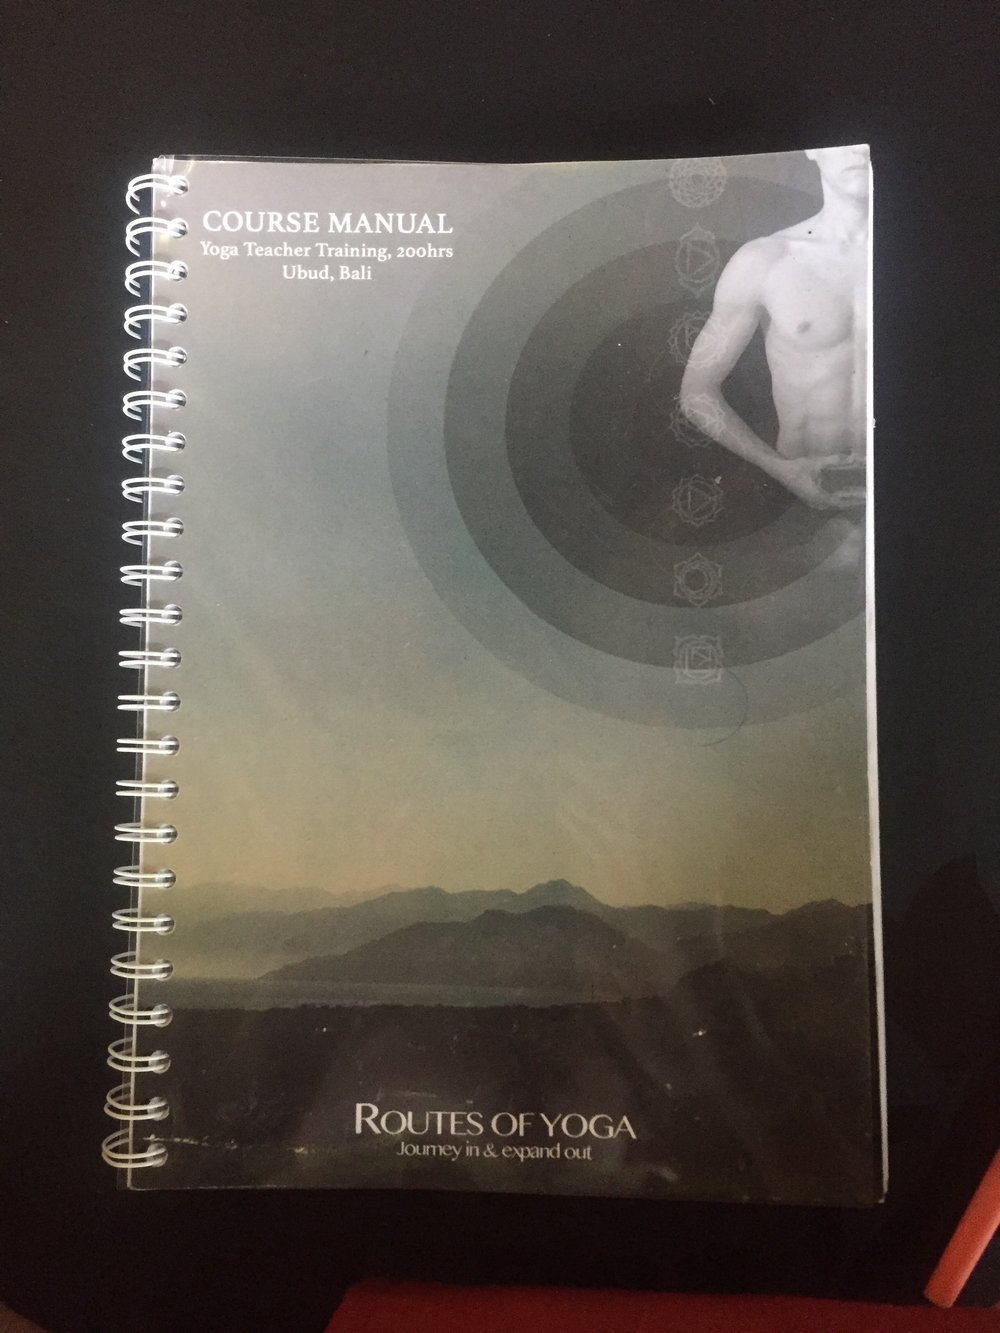 ROY Course Manual